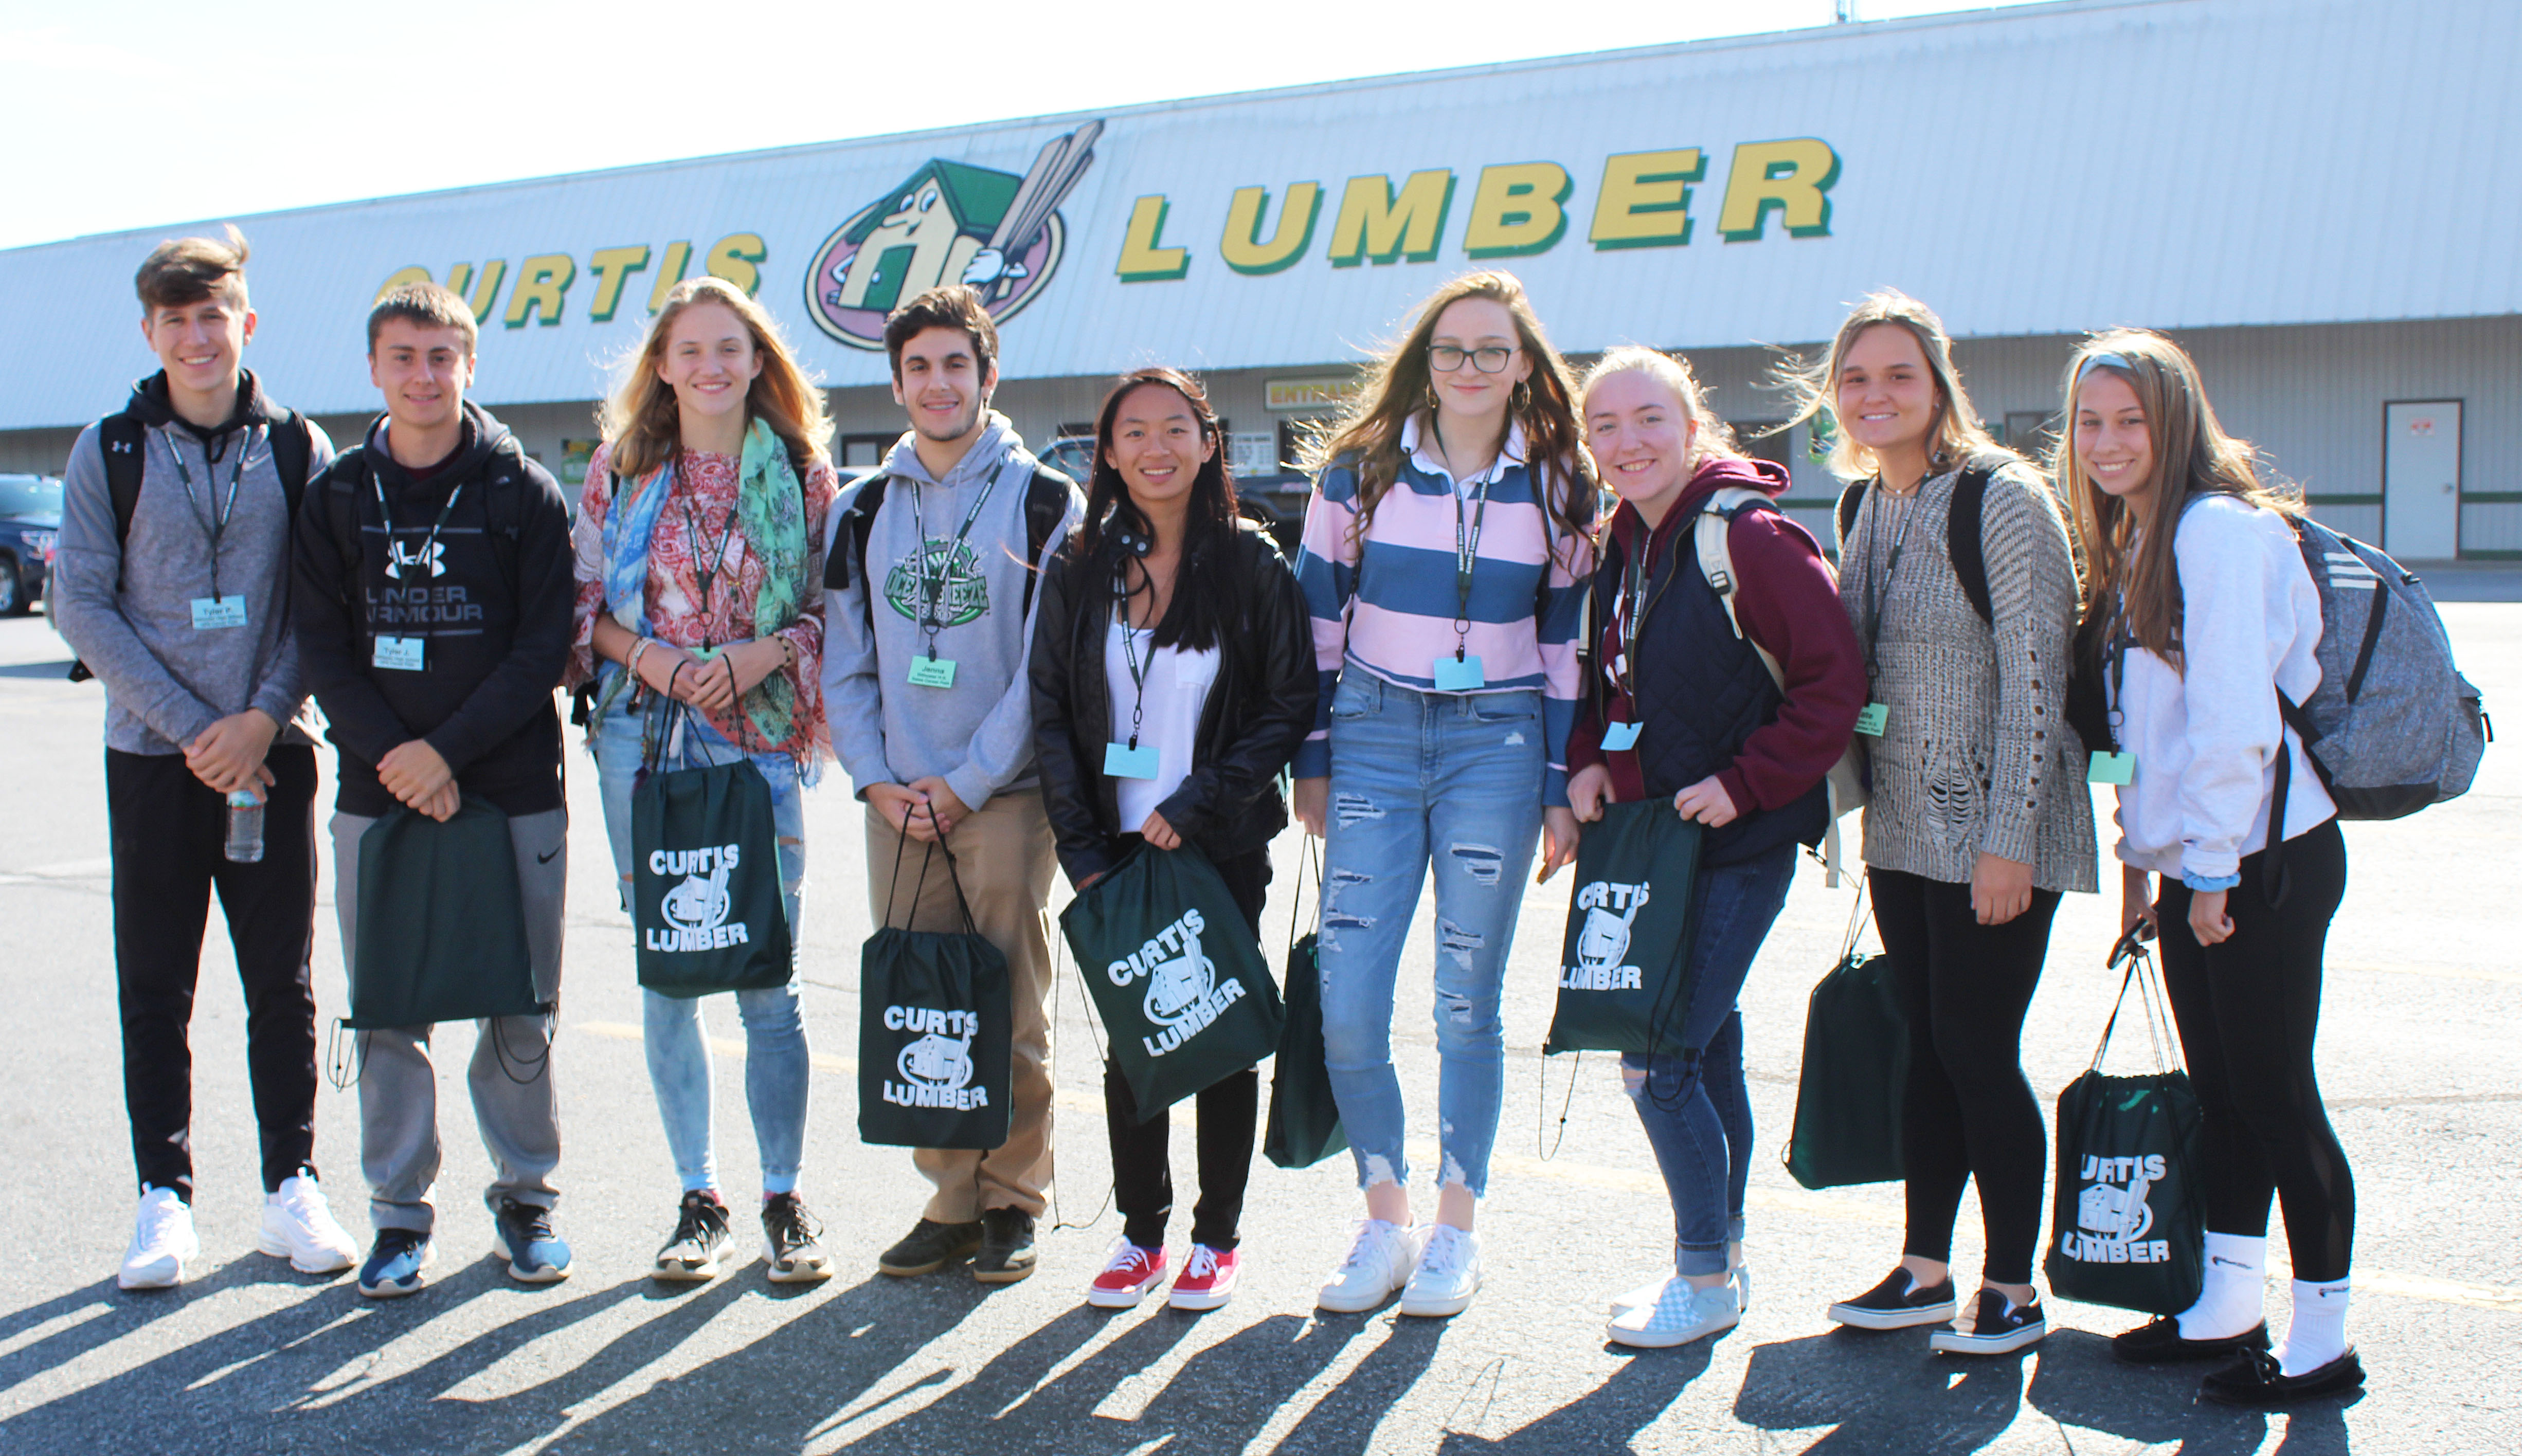 9 students lined up in front of Curtis Lumber store